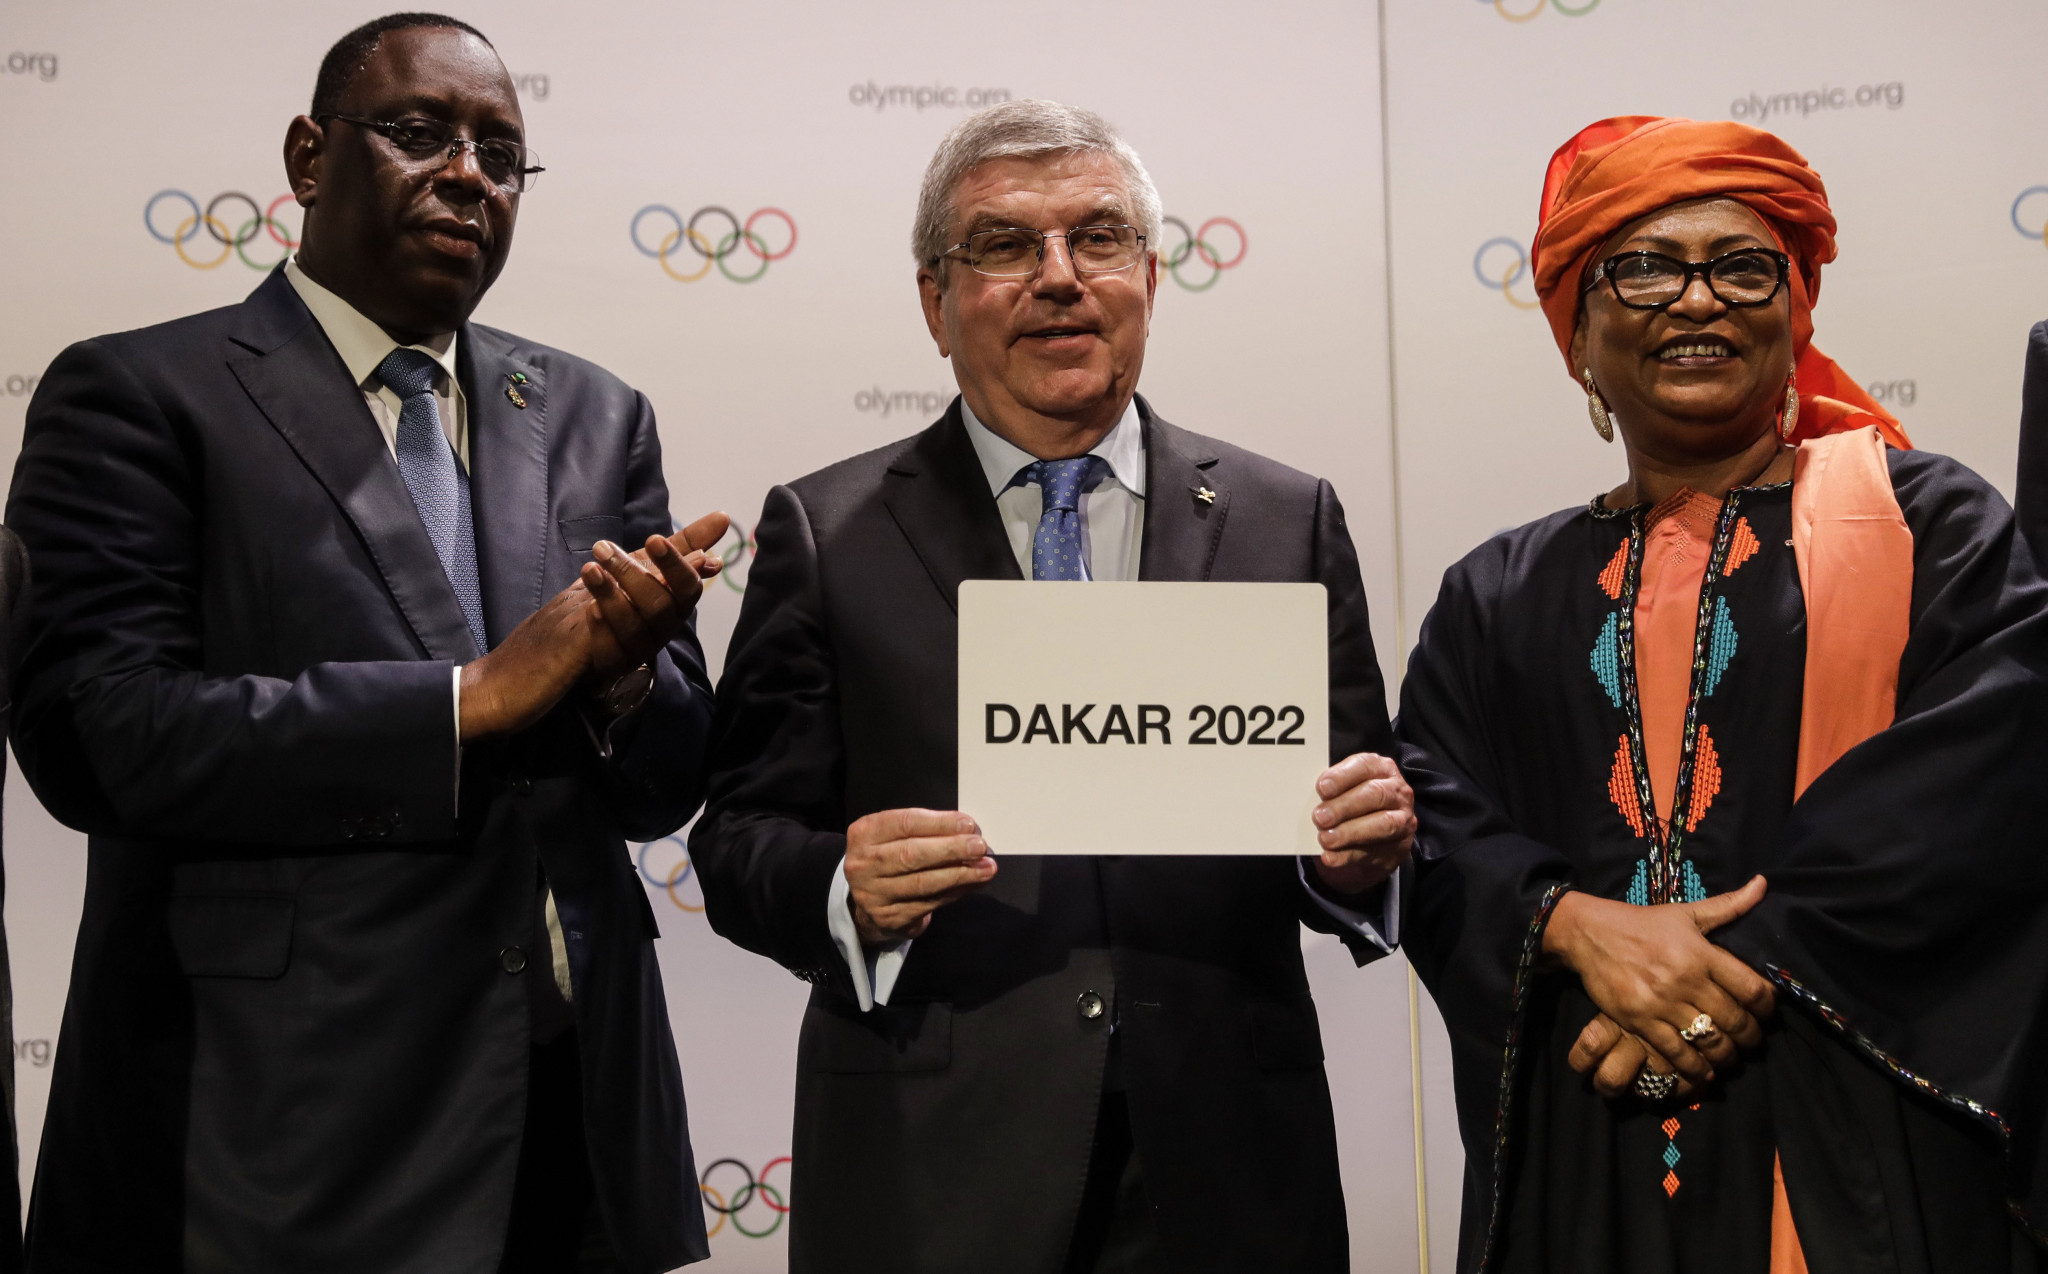 Dakar was announced as the host the 2022 Summer Youth Olympic Games yesterday ©Getty Images